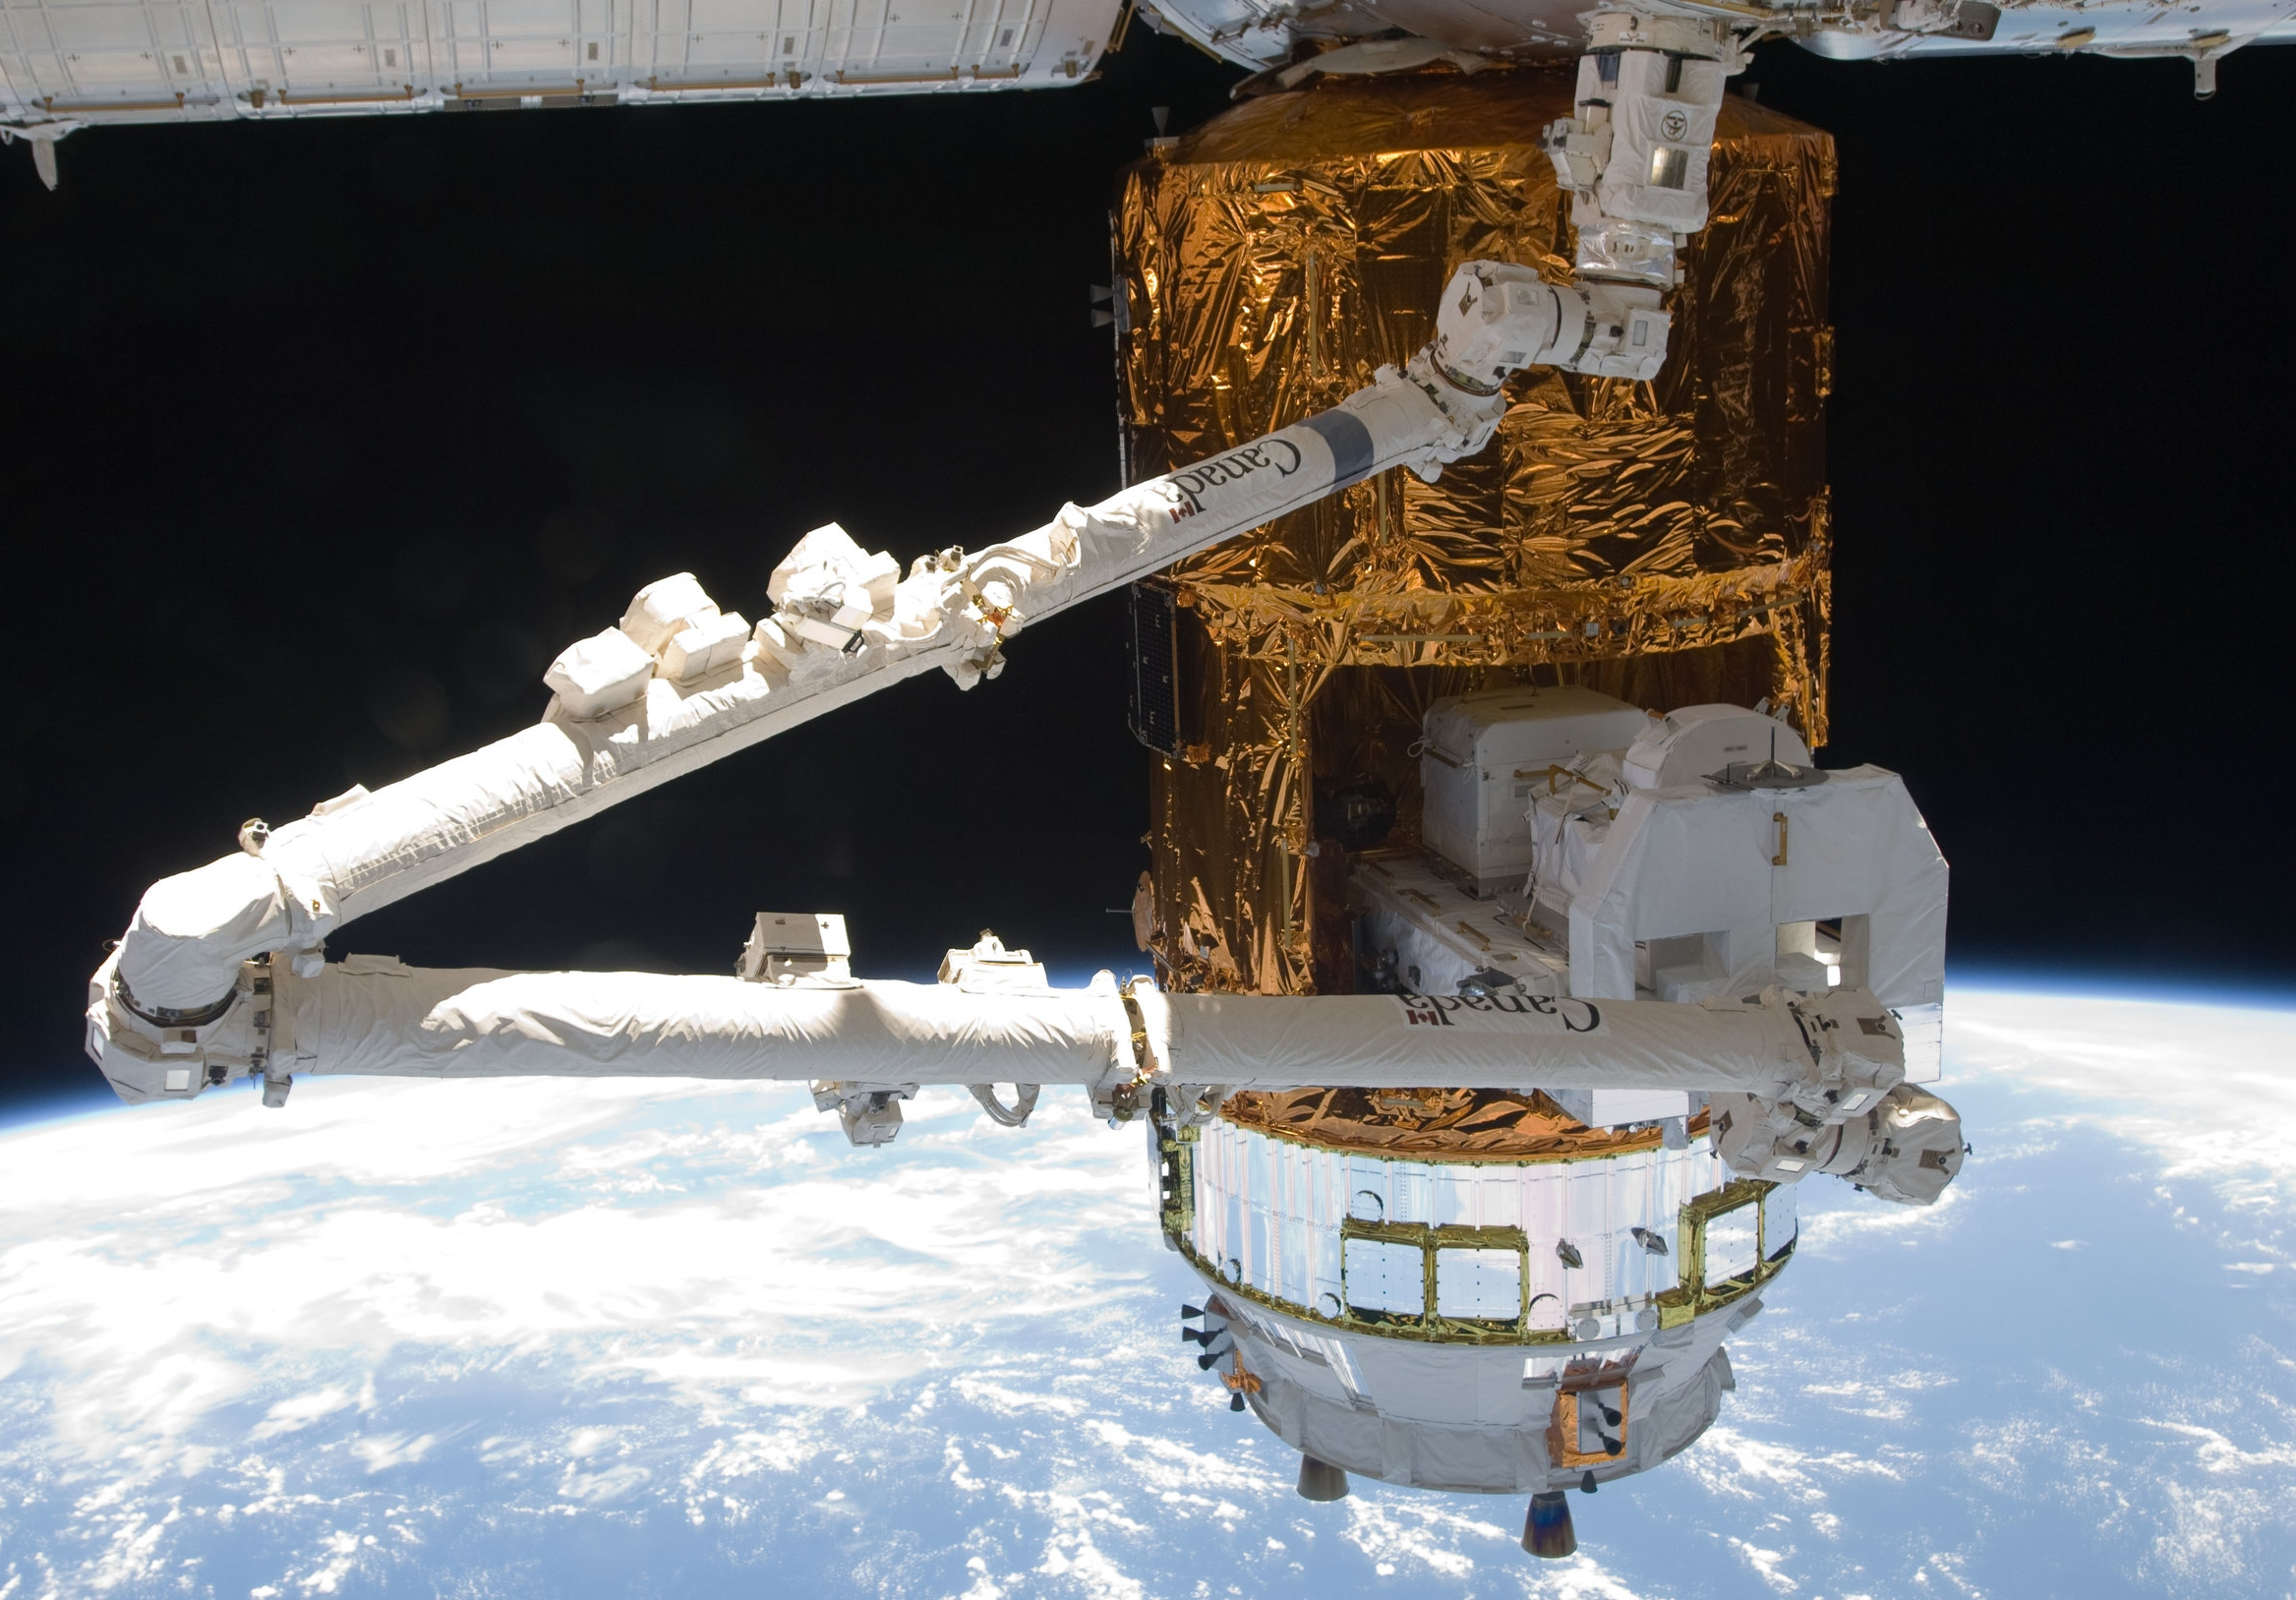 Equipment is removed from the Unpressurized Logistics Module by the robotic Canadarm2. Credit: NASA